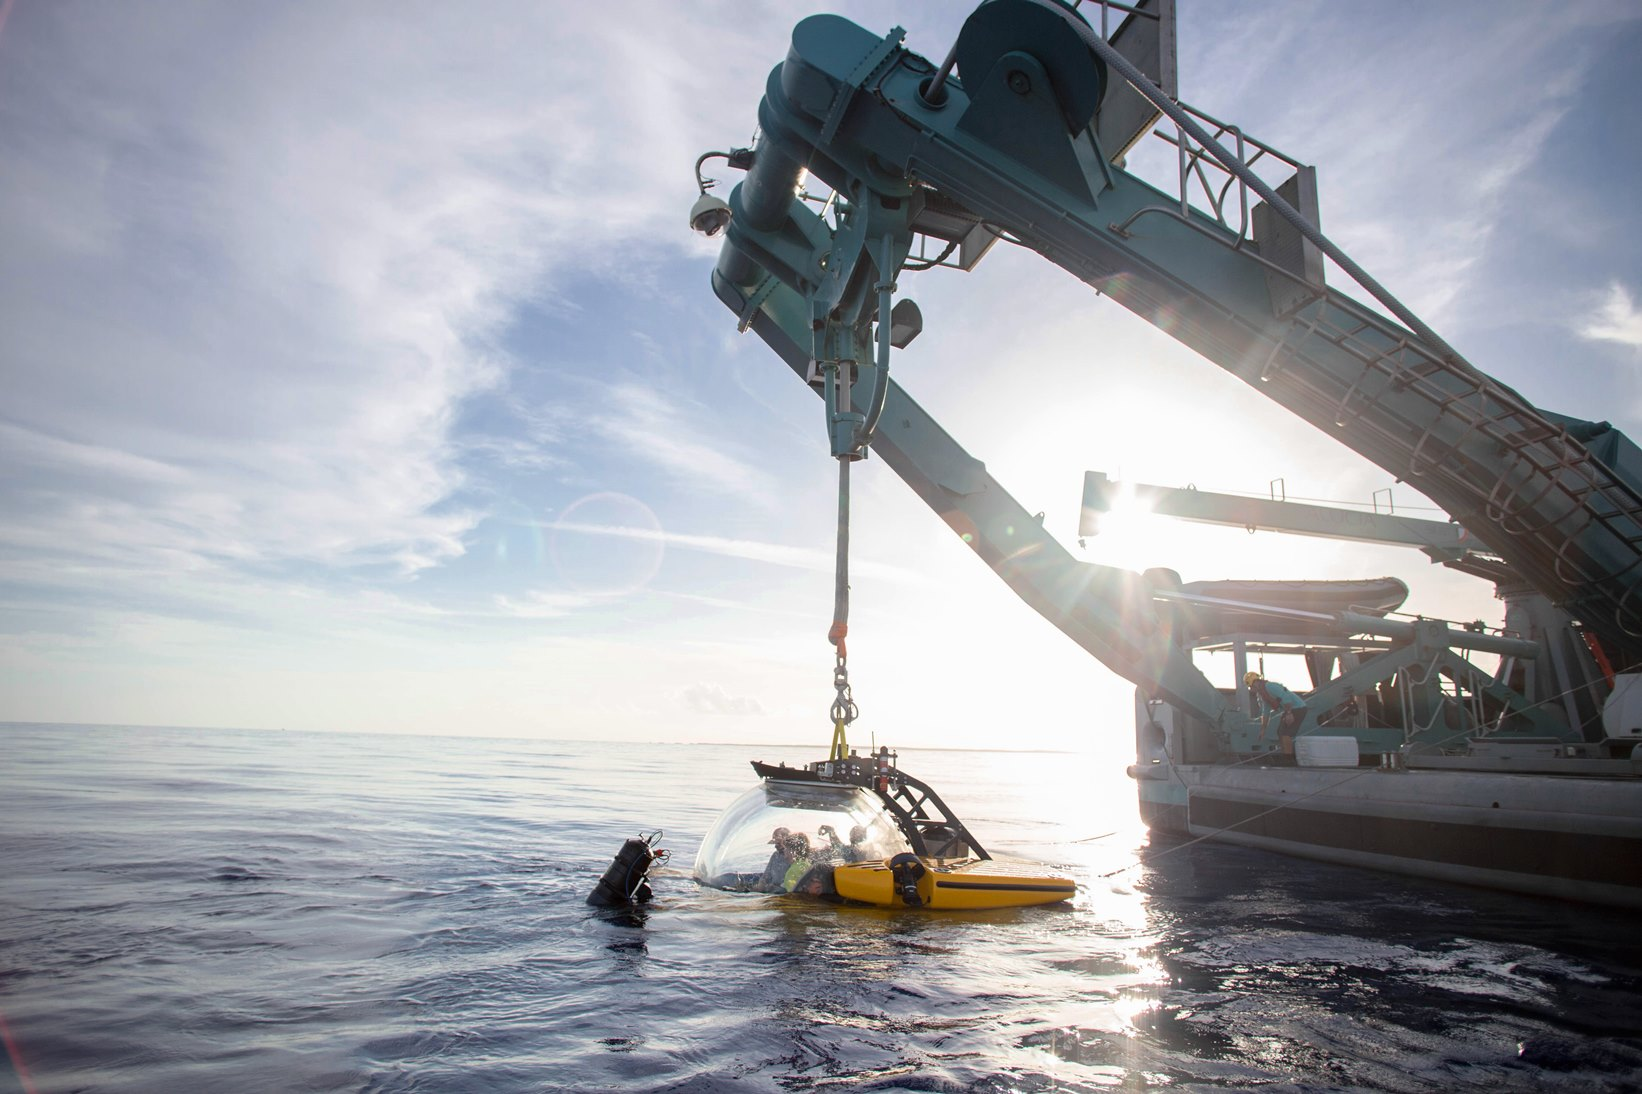 Scientists preparing to launch the submersible from the M/V Alucia.